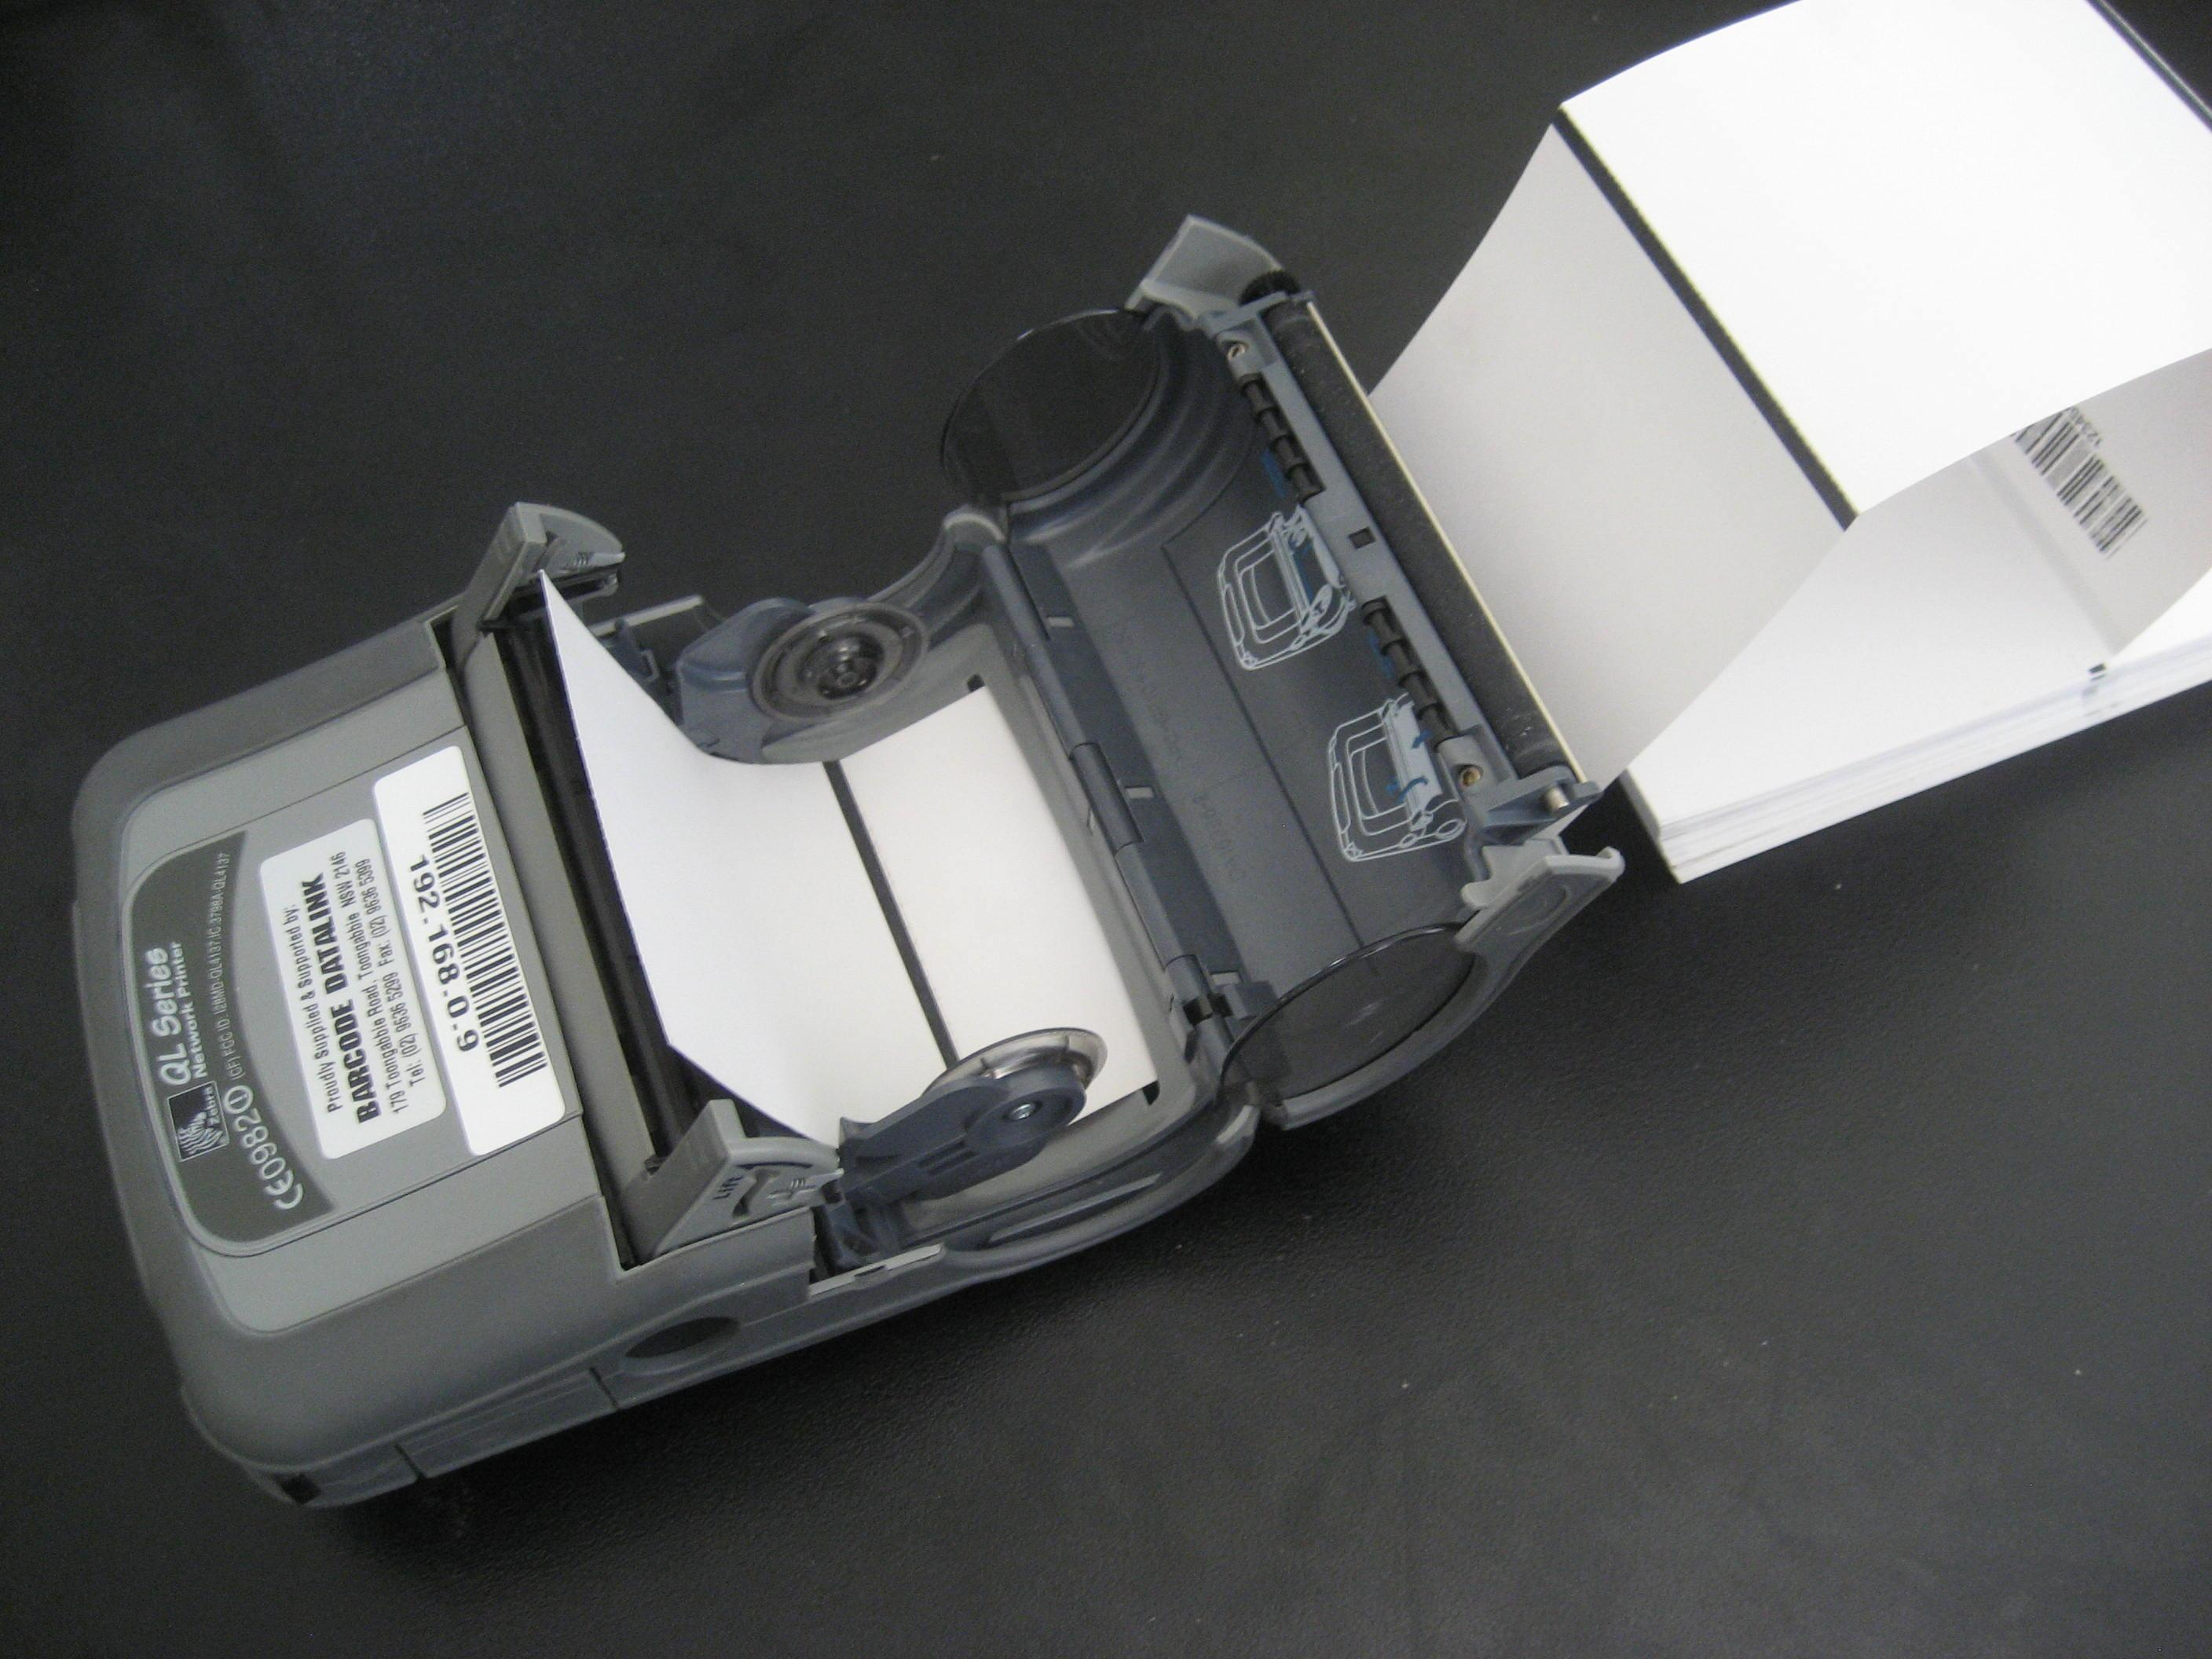 Fanfold direct thermal tag stock is ideal for mobile printer - QL420 printer pictured